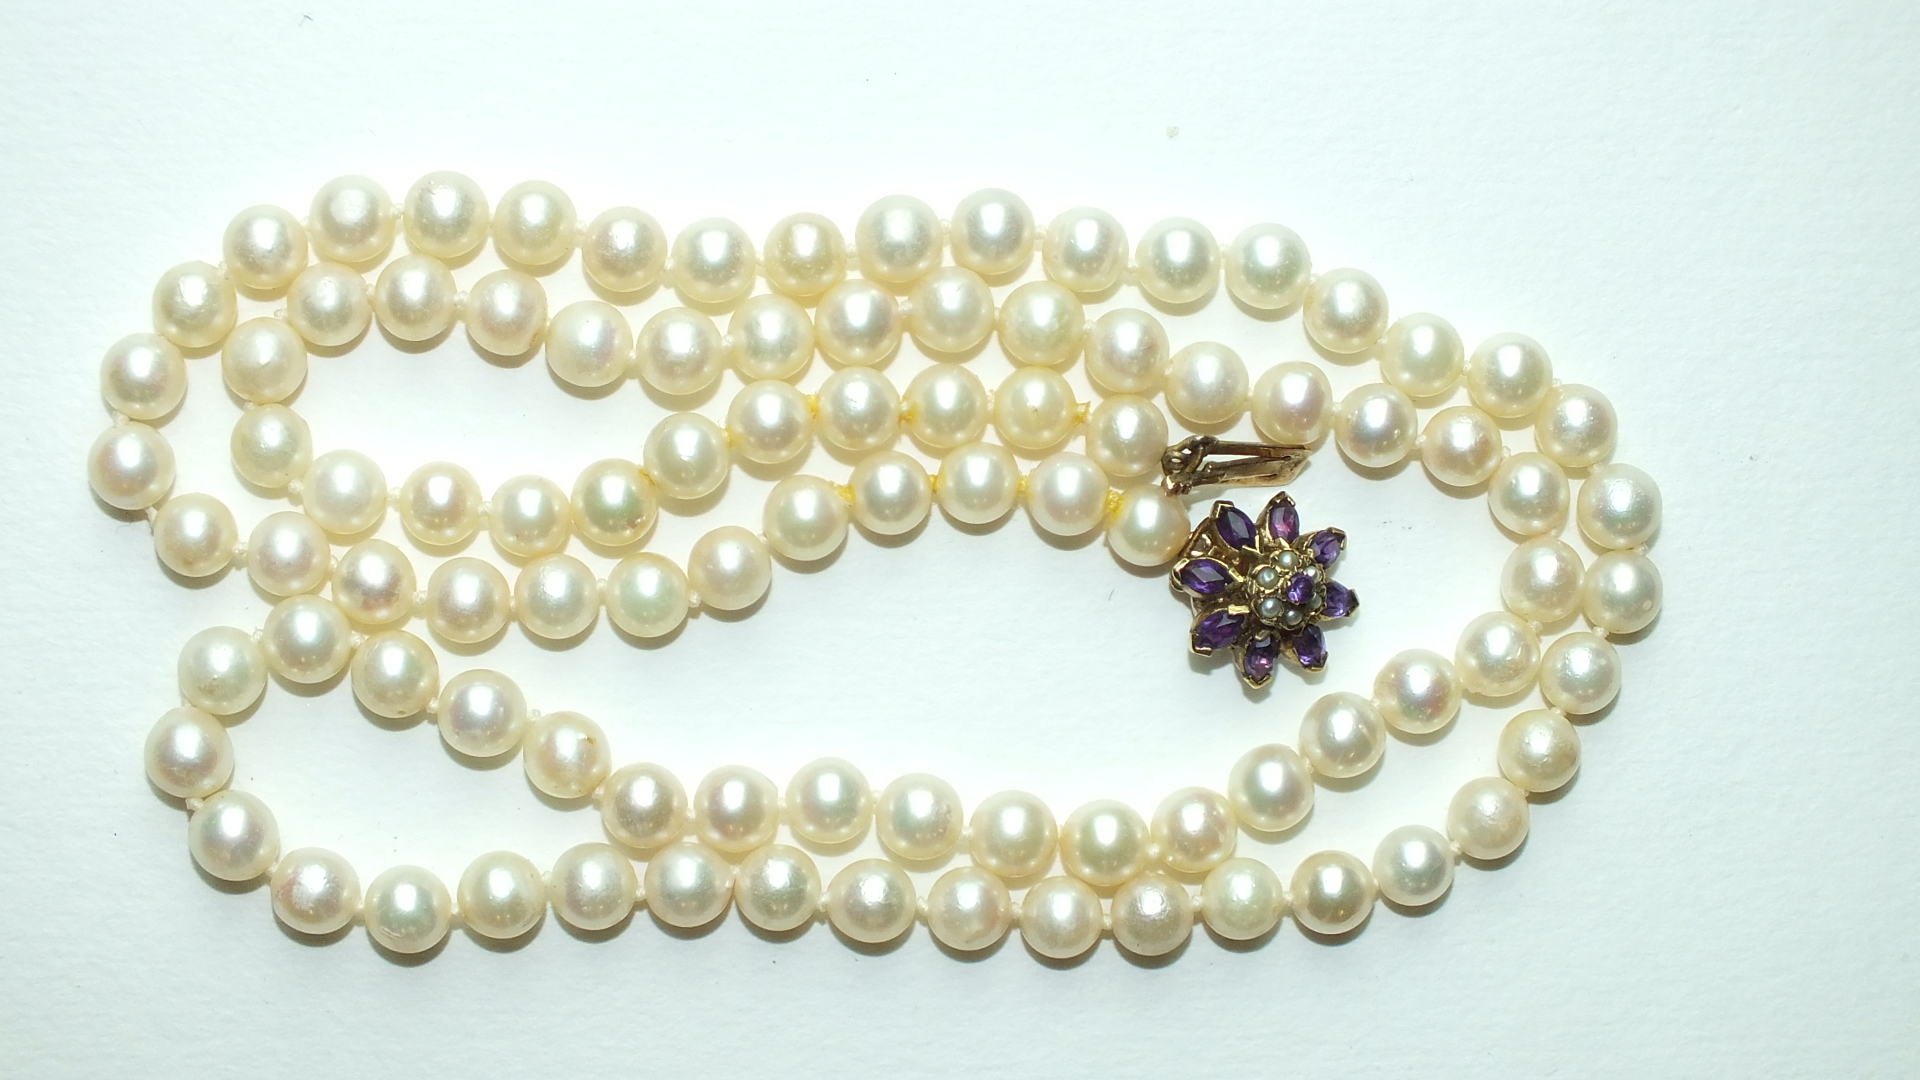 A long string of 95 uniform cultured pearls, 7mm diameter, with 9ct gold clasp set amethyst and seed